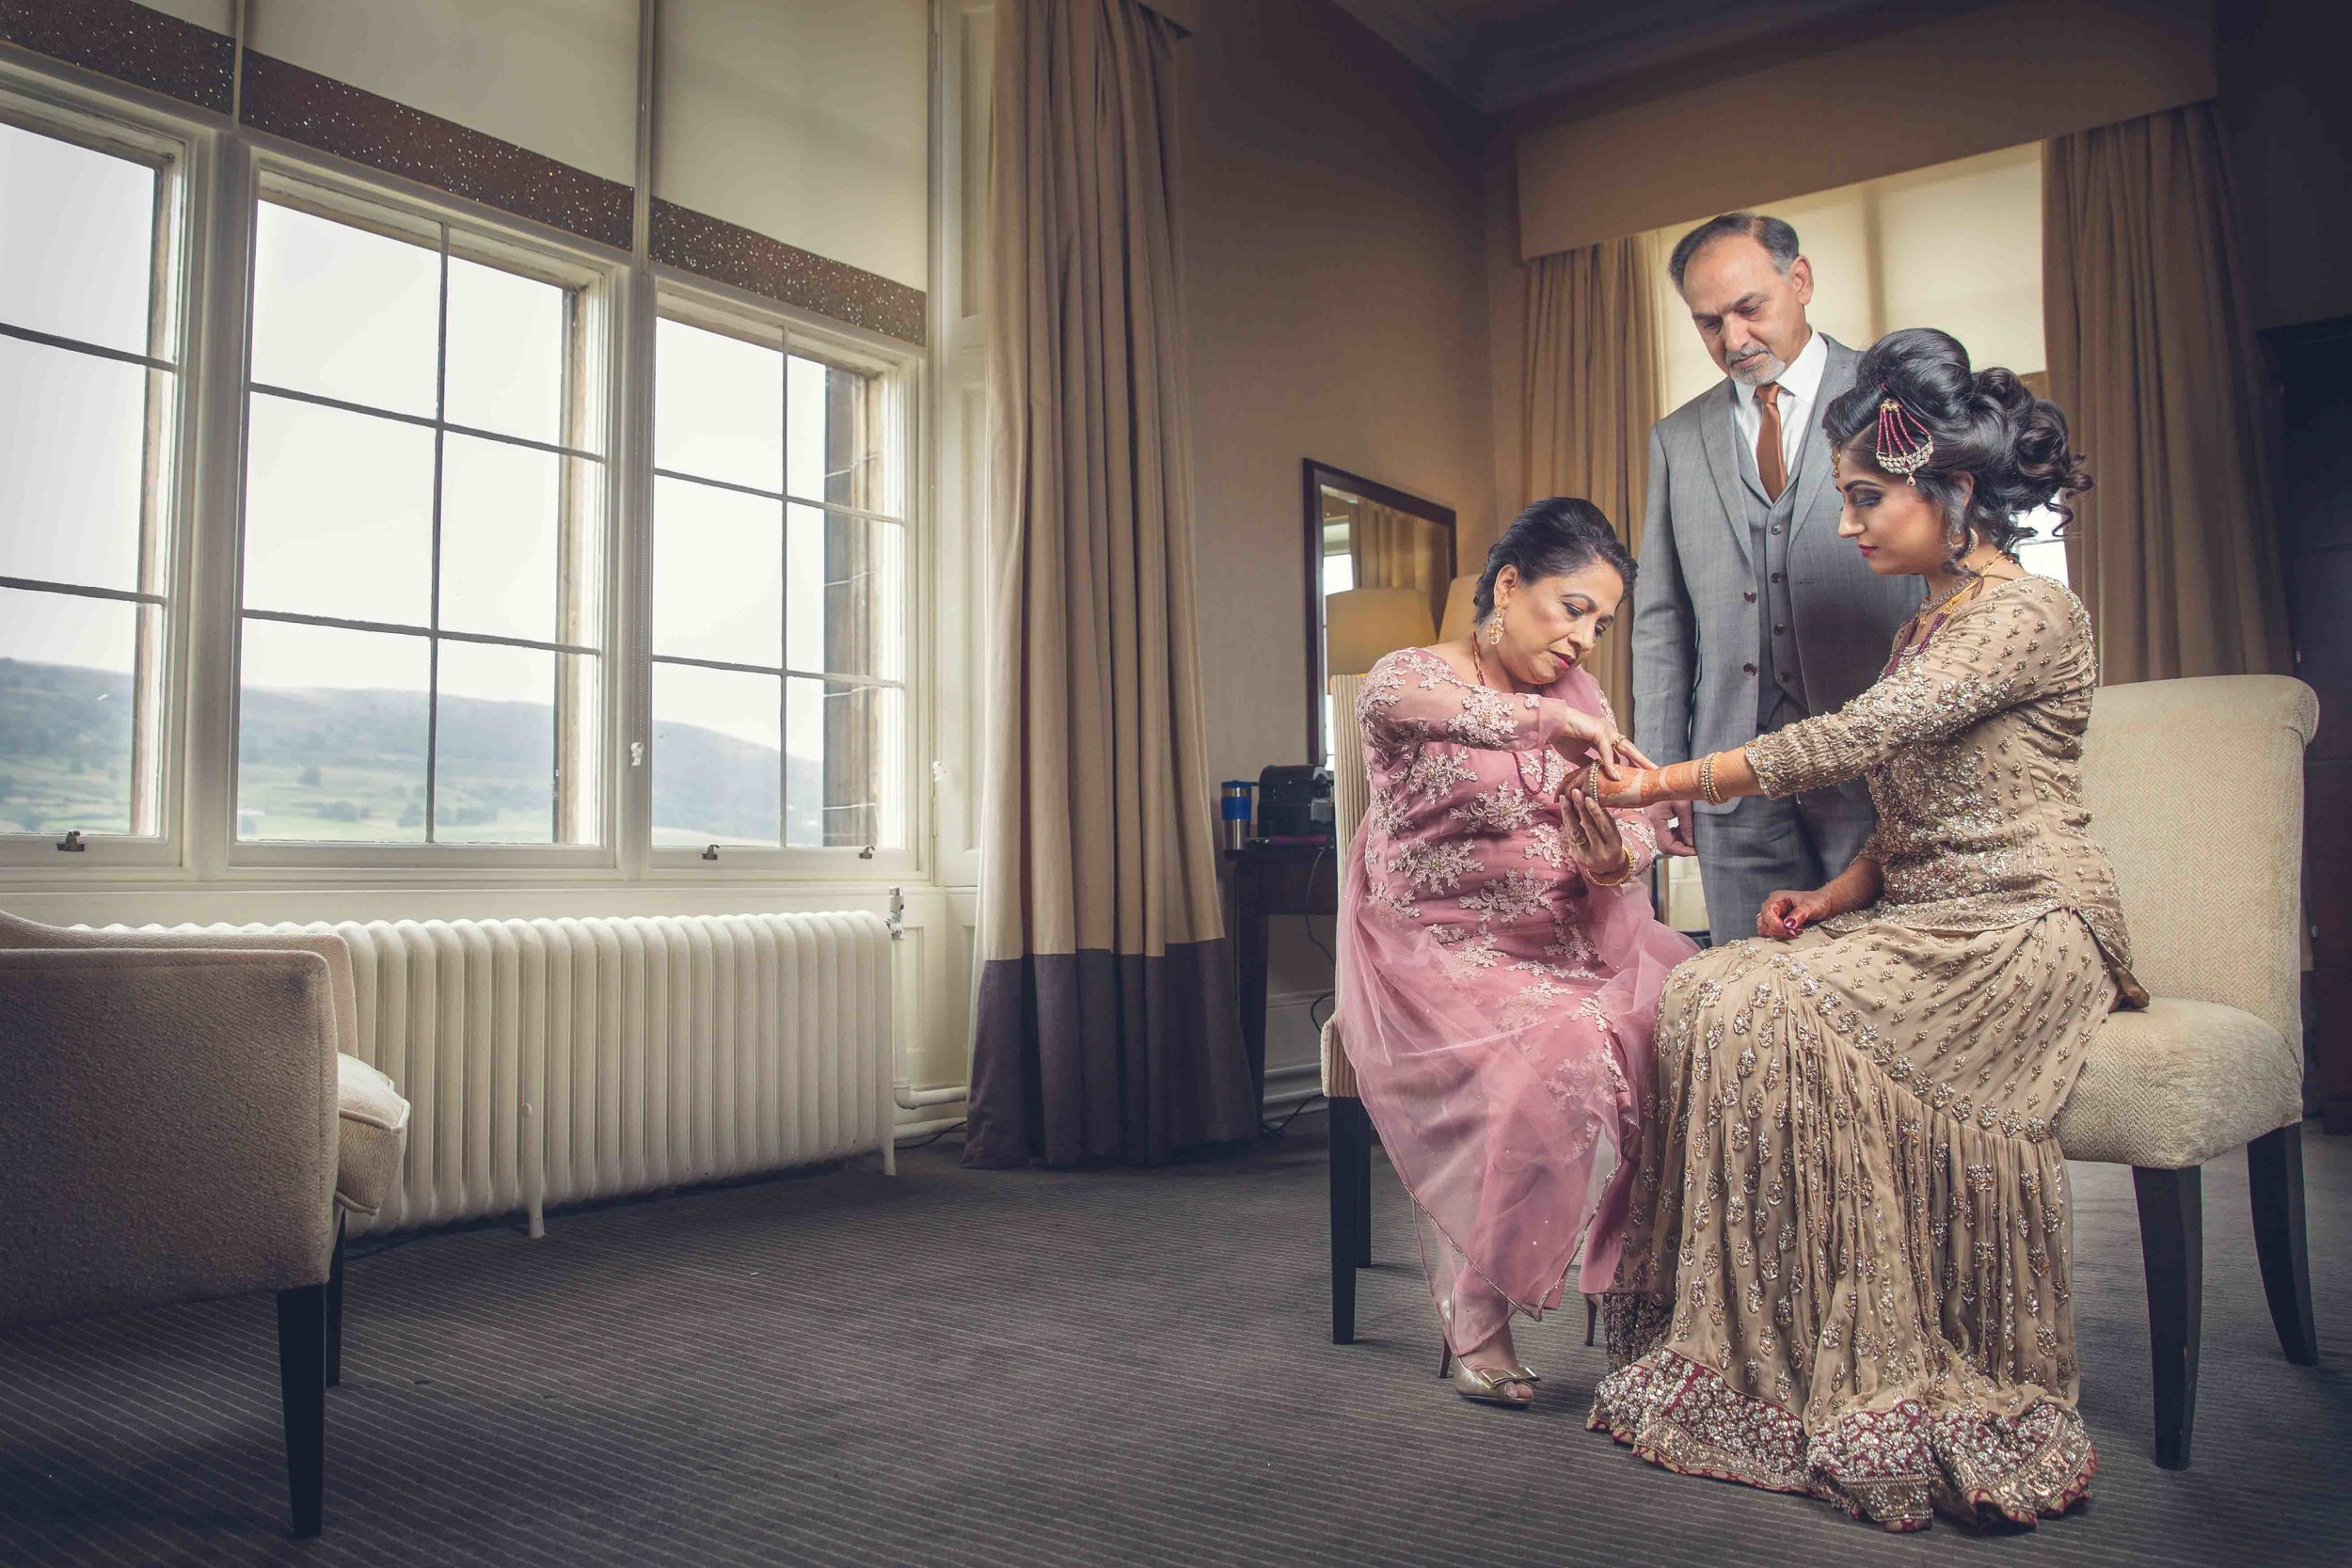 Opu Sultan Photography Asian wedding photography scotland edinburgh glasgow manchester birmingham london-241.jpg